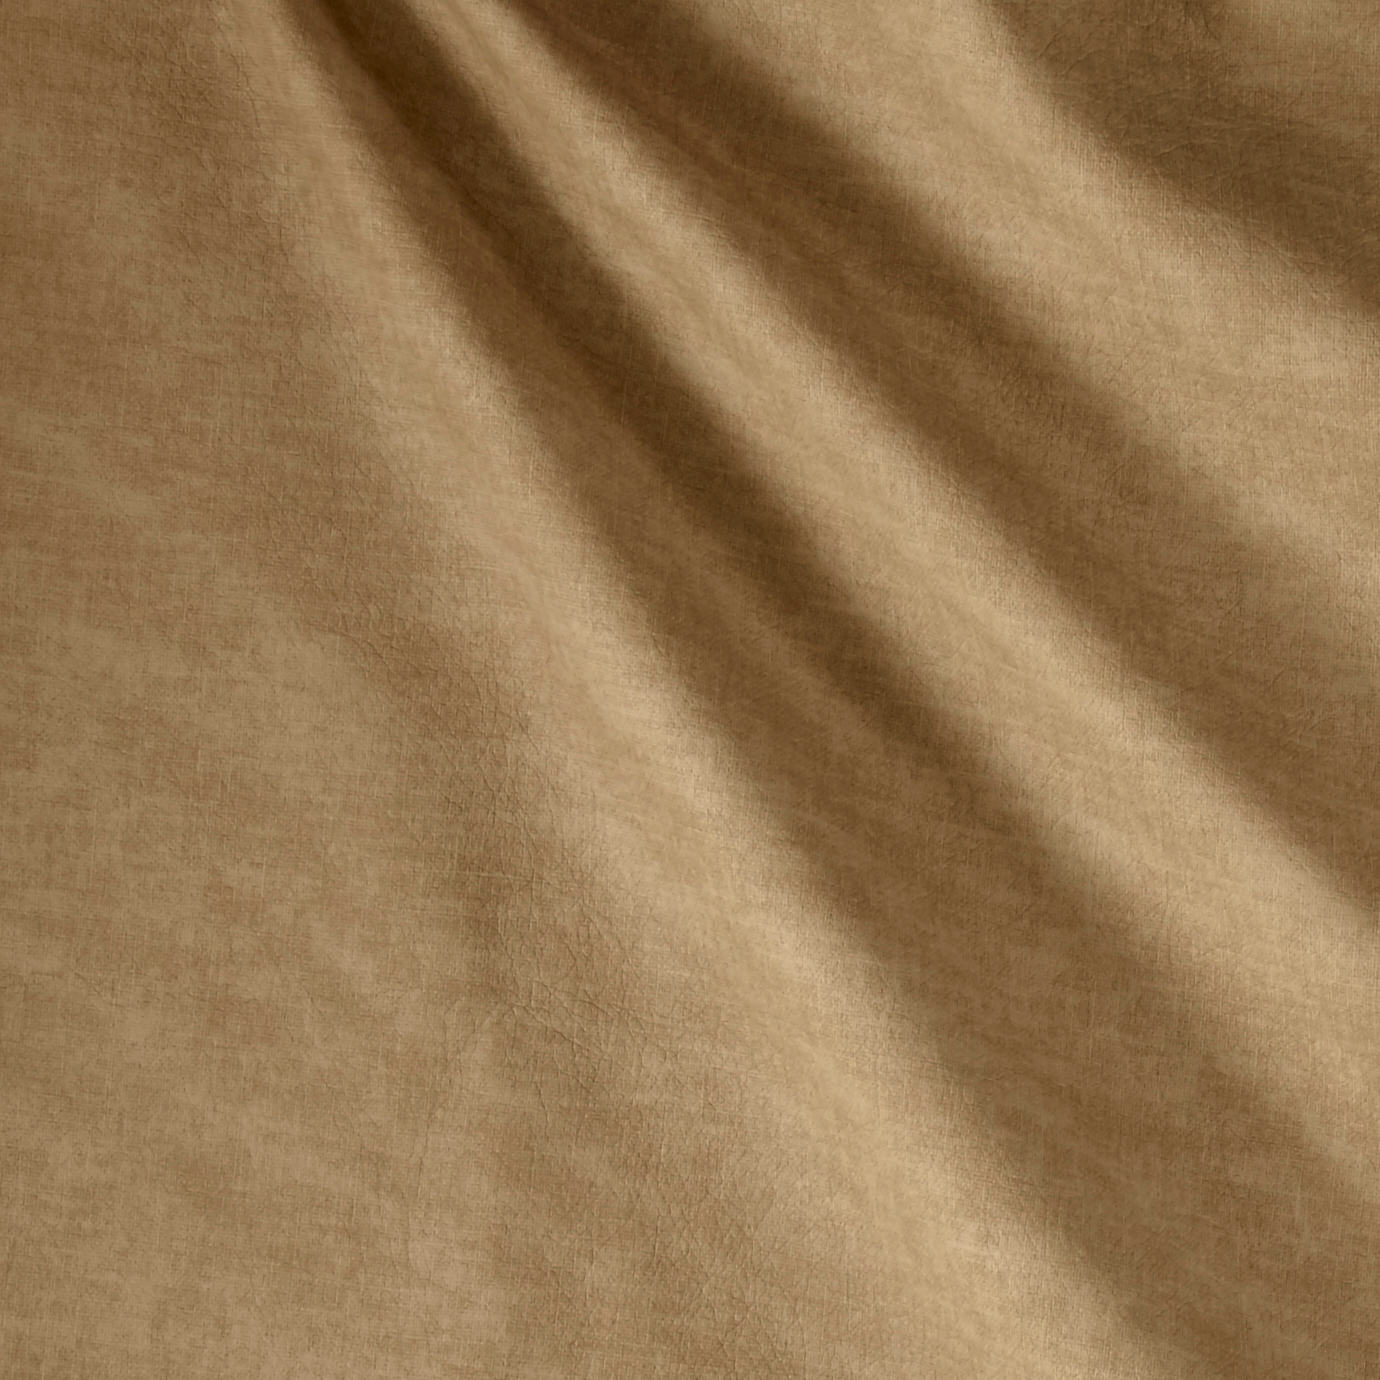 Richloom Tough Faux Leather Supima Latte Fabric By The Yard by Richloom in USA